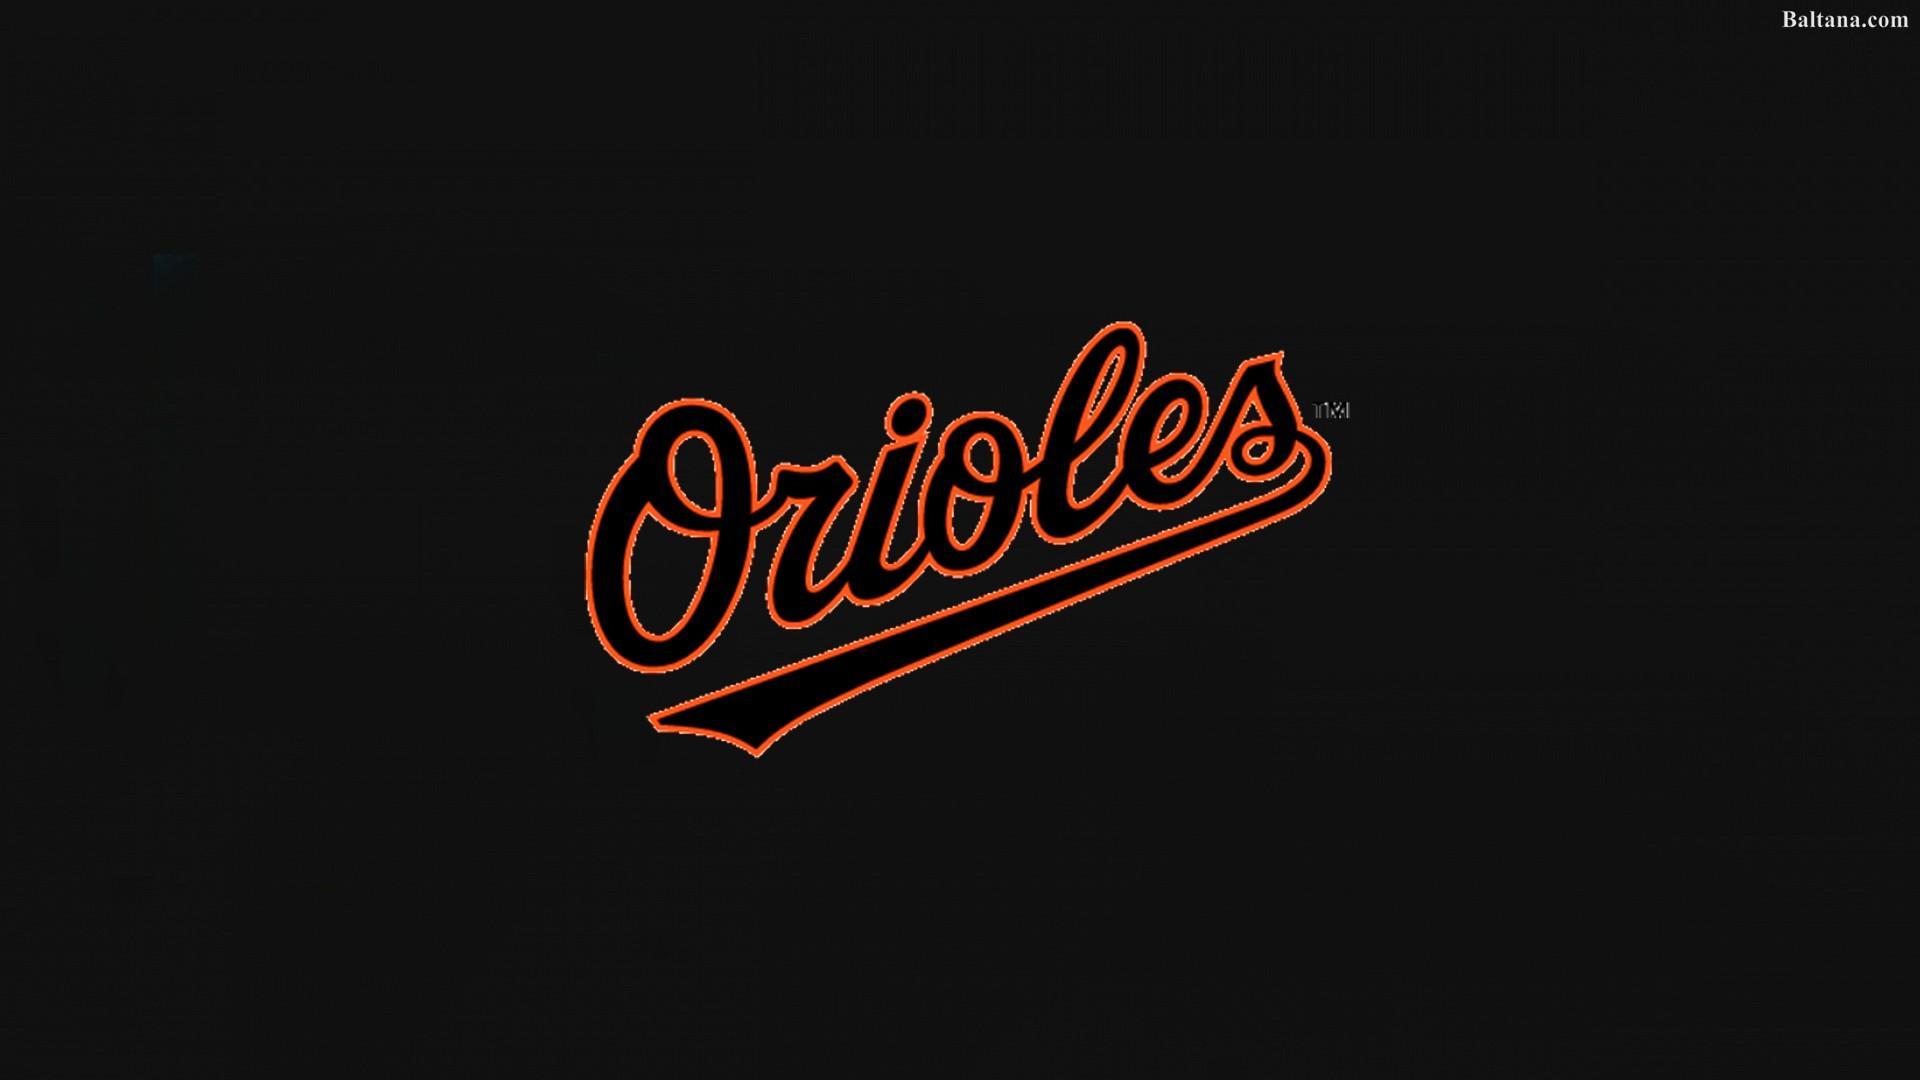 Baltimore Orioles 2019 Wallpapers